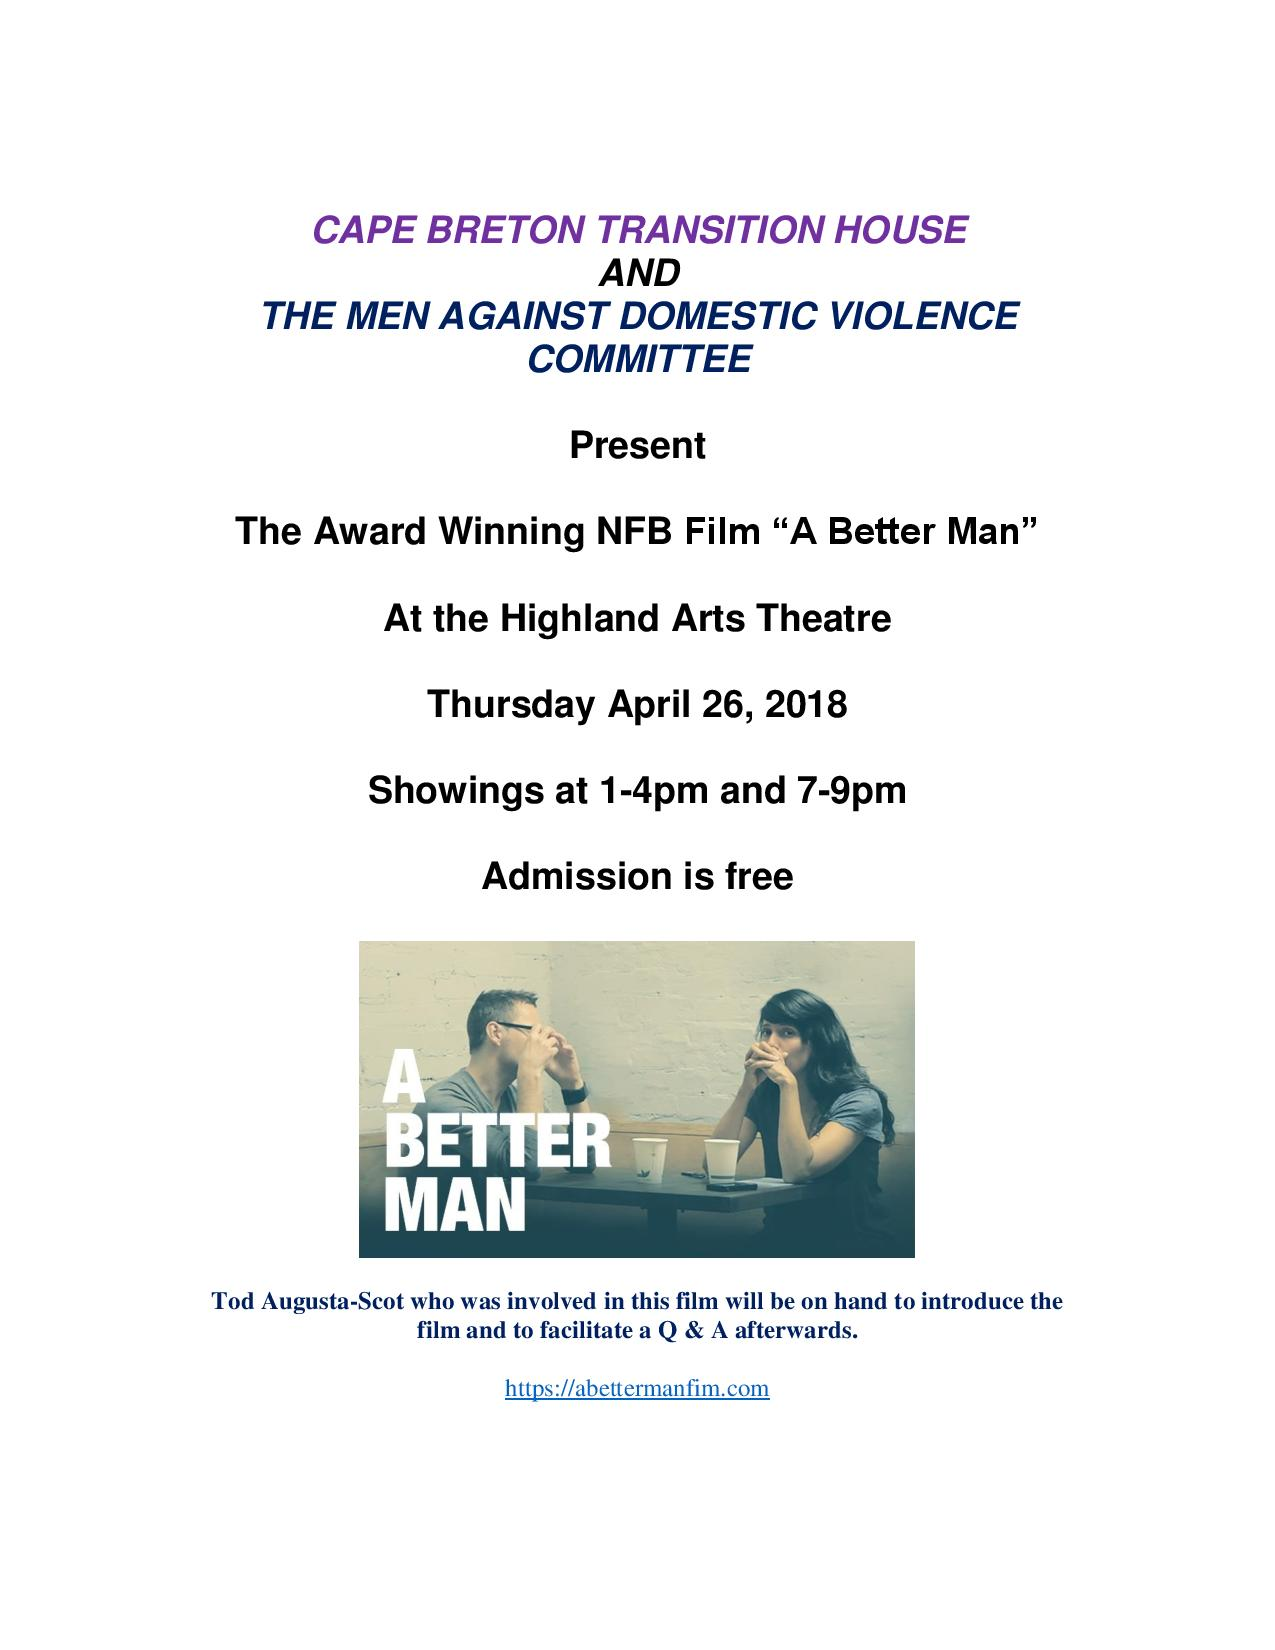 A Better Man Poster 2018-page-001.jpg